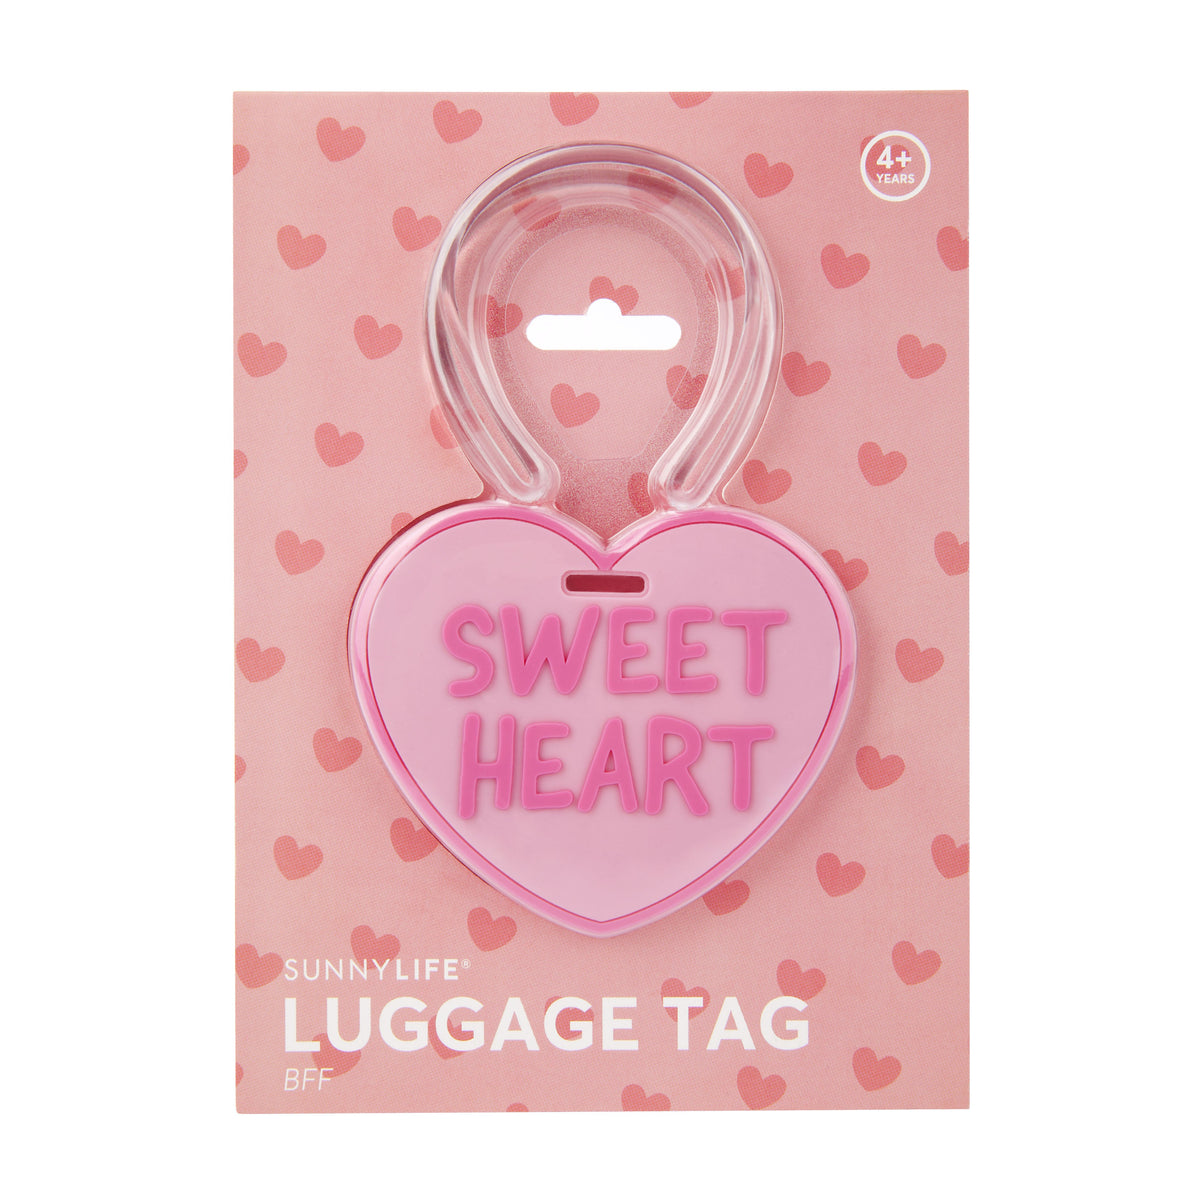 Sunnylife | Luggage Tag | BFF